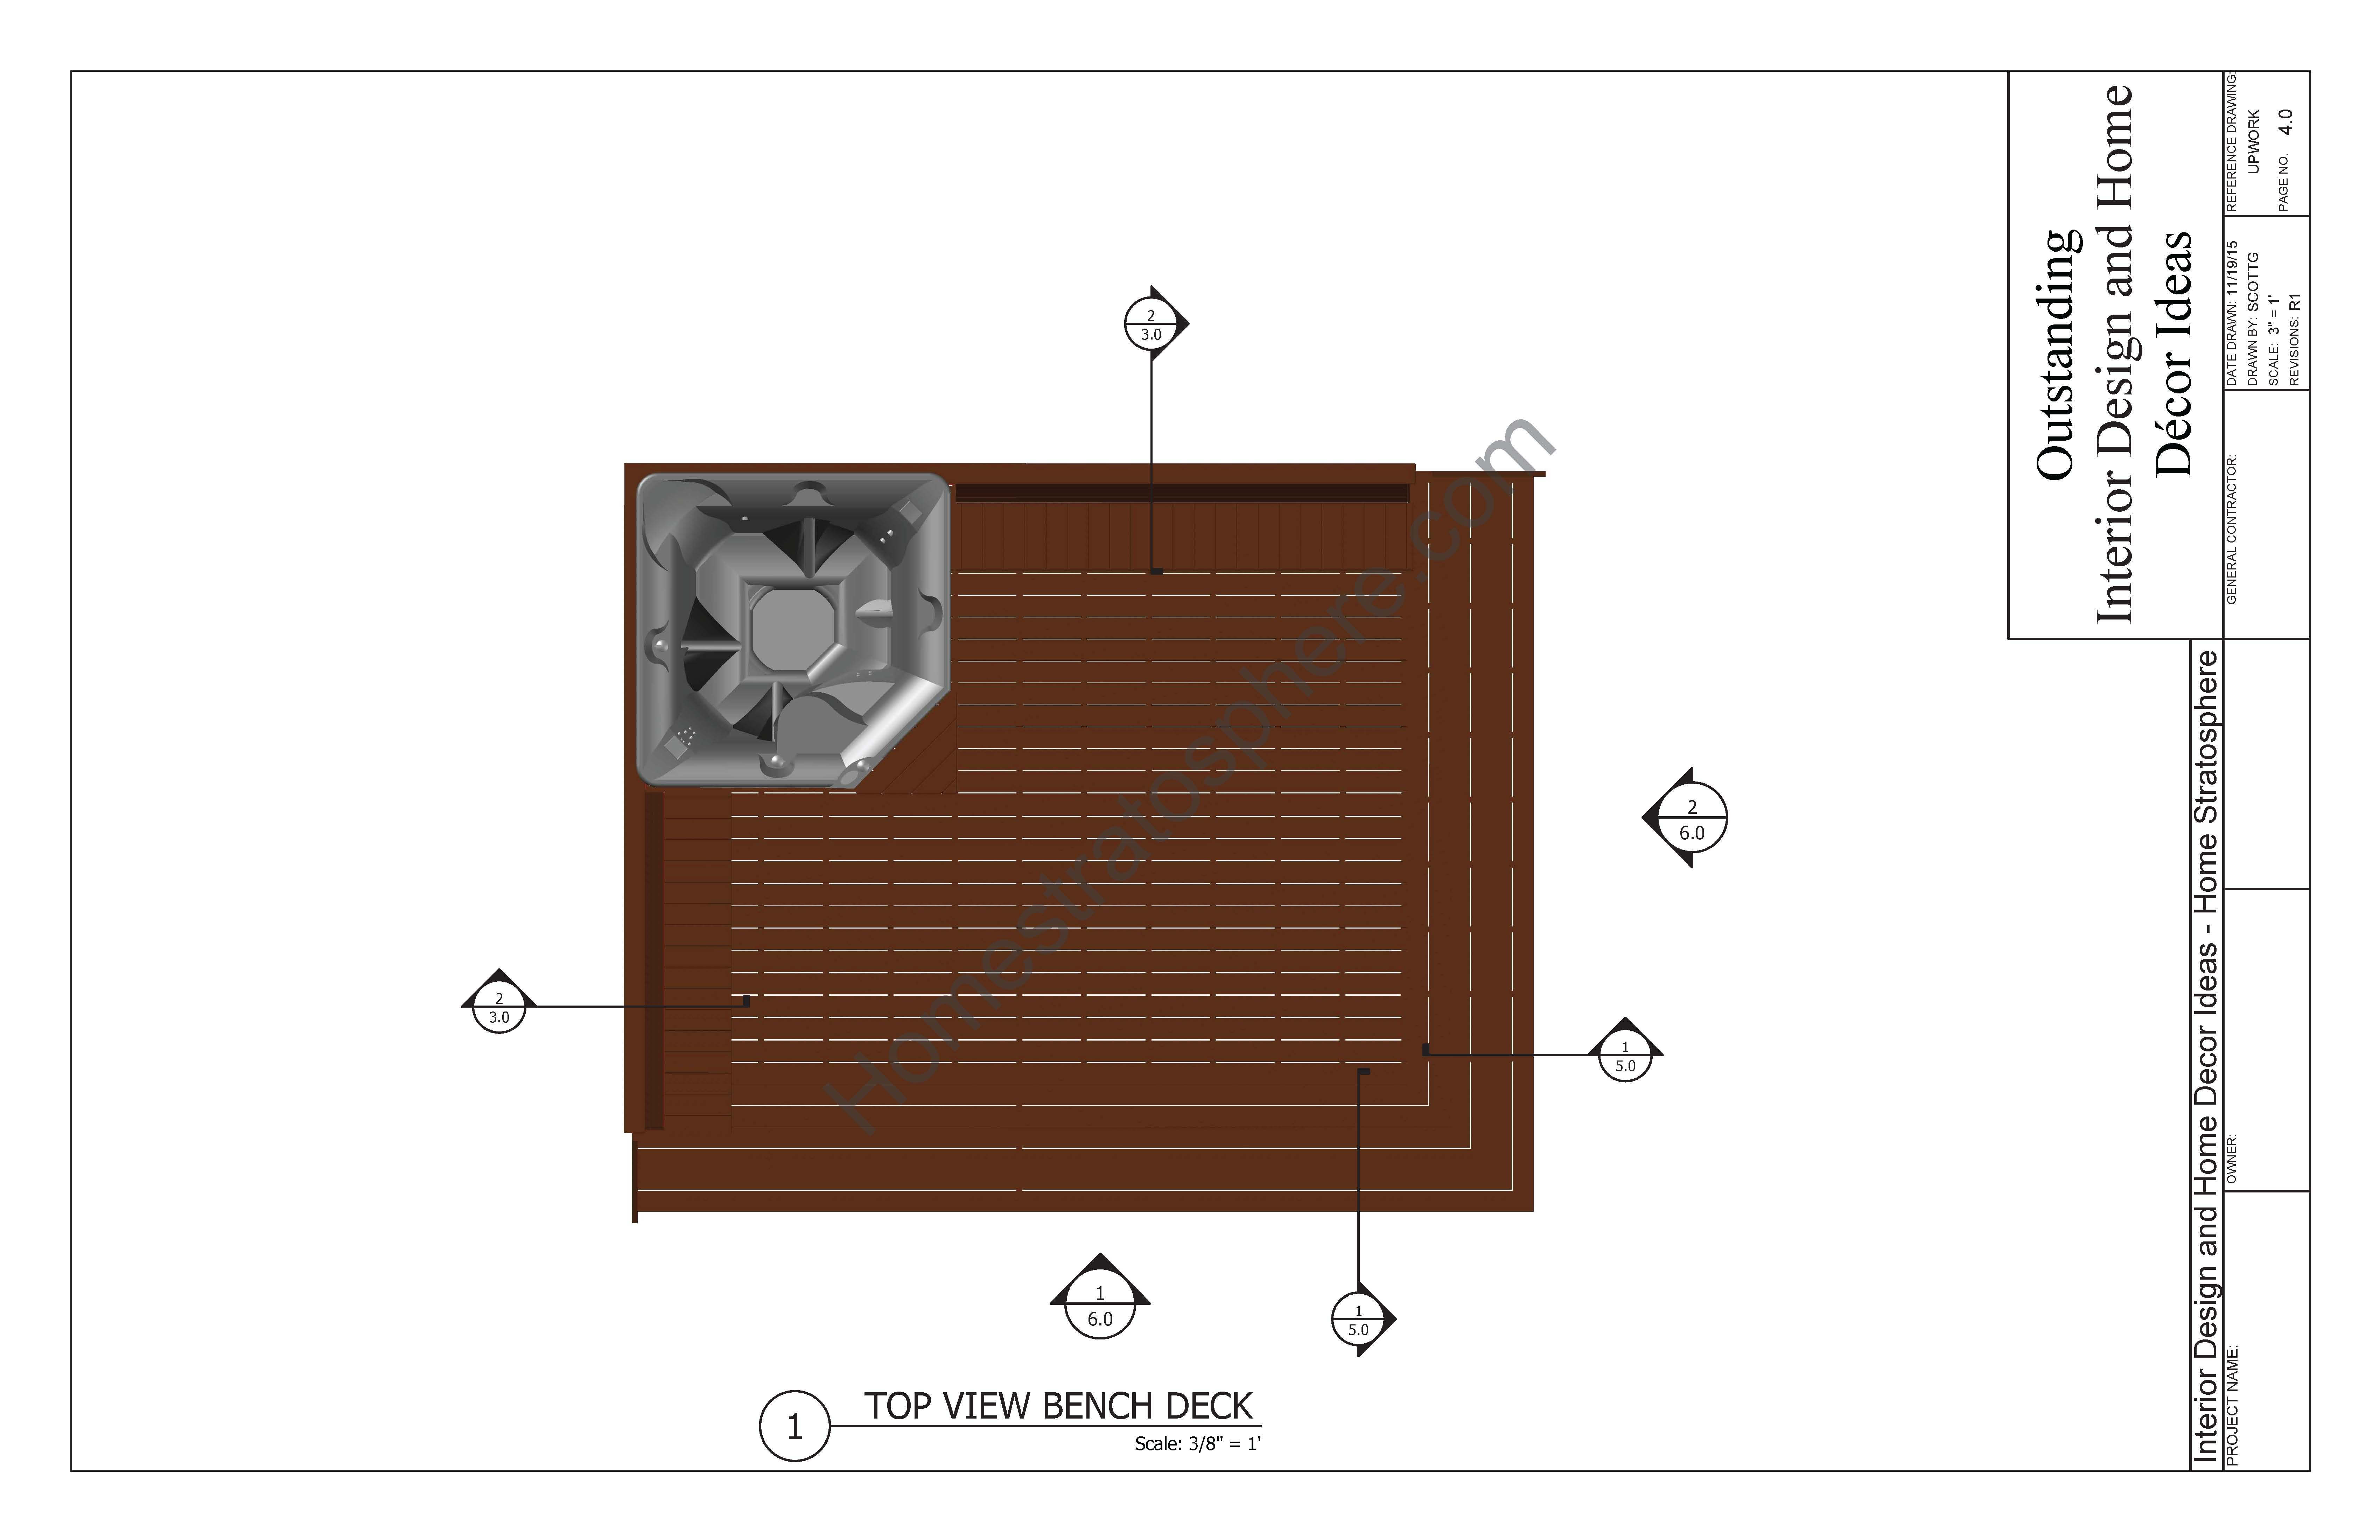 shaded hot tub deck design_Page_07